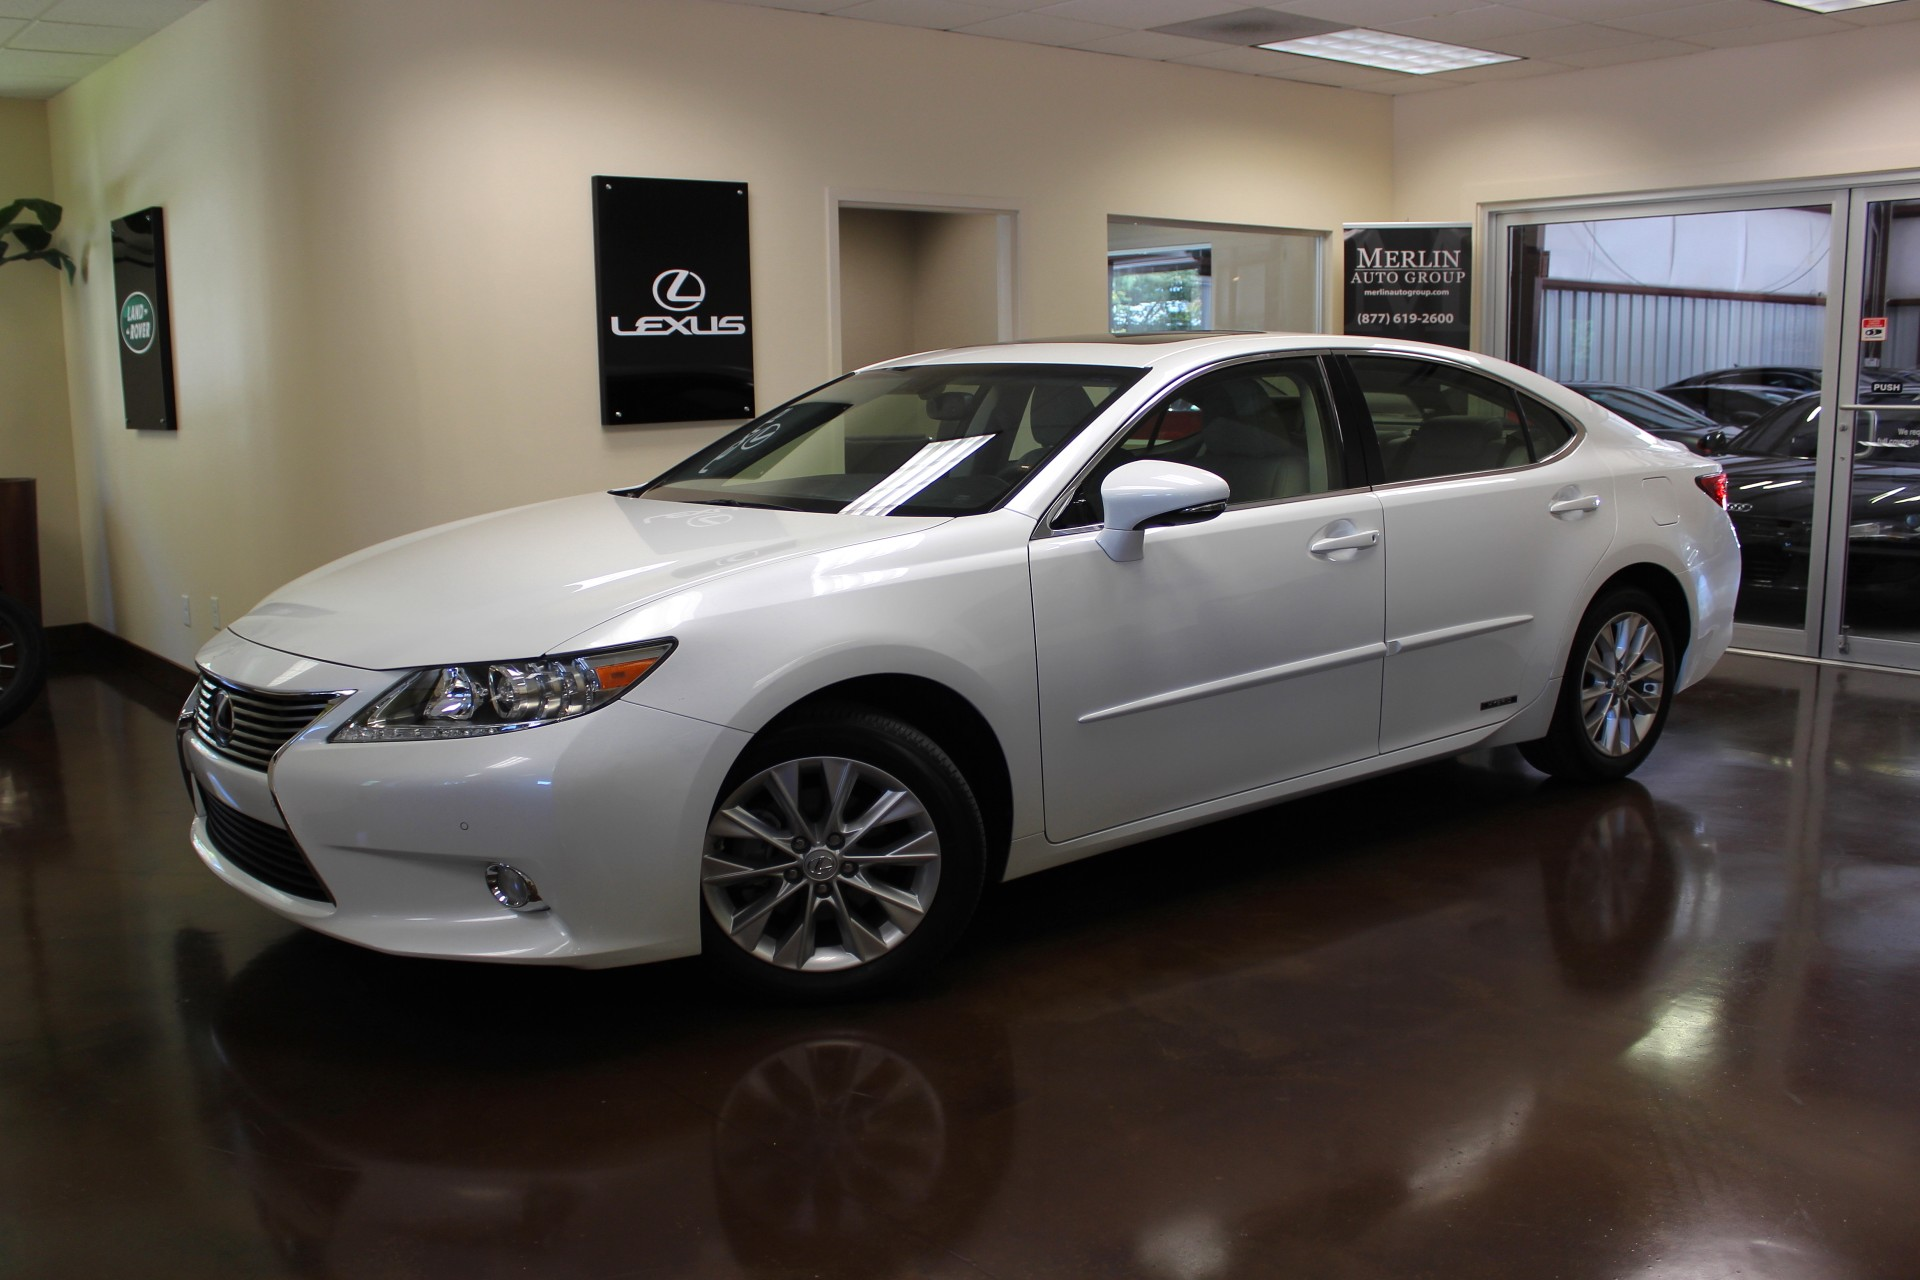 used 2013 lexus es 300h stock p2894 ultra luxury car from merlin auto group. Black Bedroom Furniture Sets. Home Design Ideas